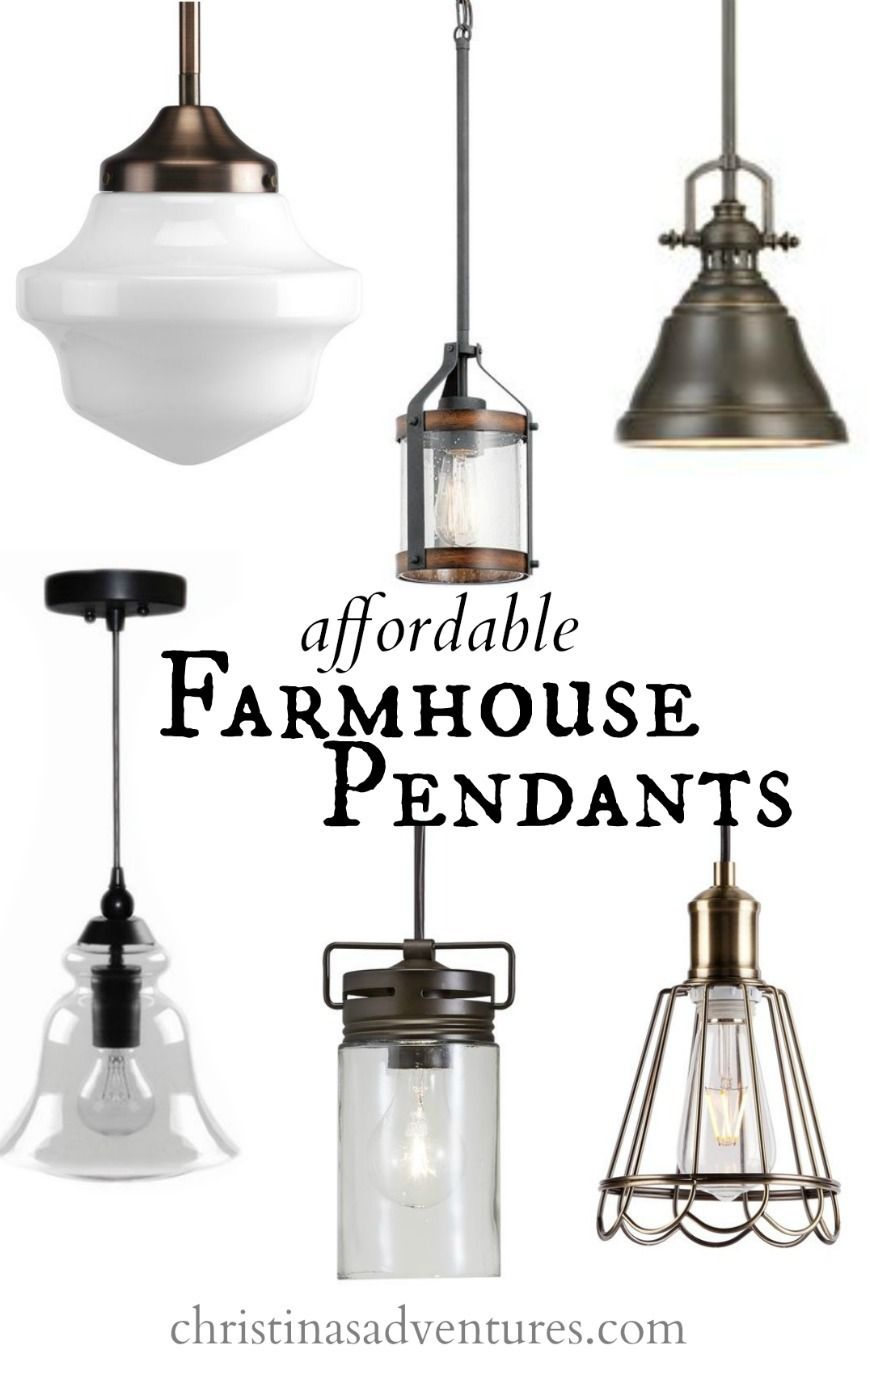 Affordable Kitchen Design Elements Illuminated Style Pinterest - Affordable pendant lighting